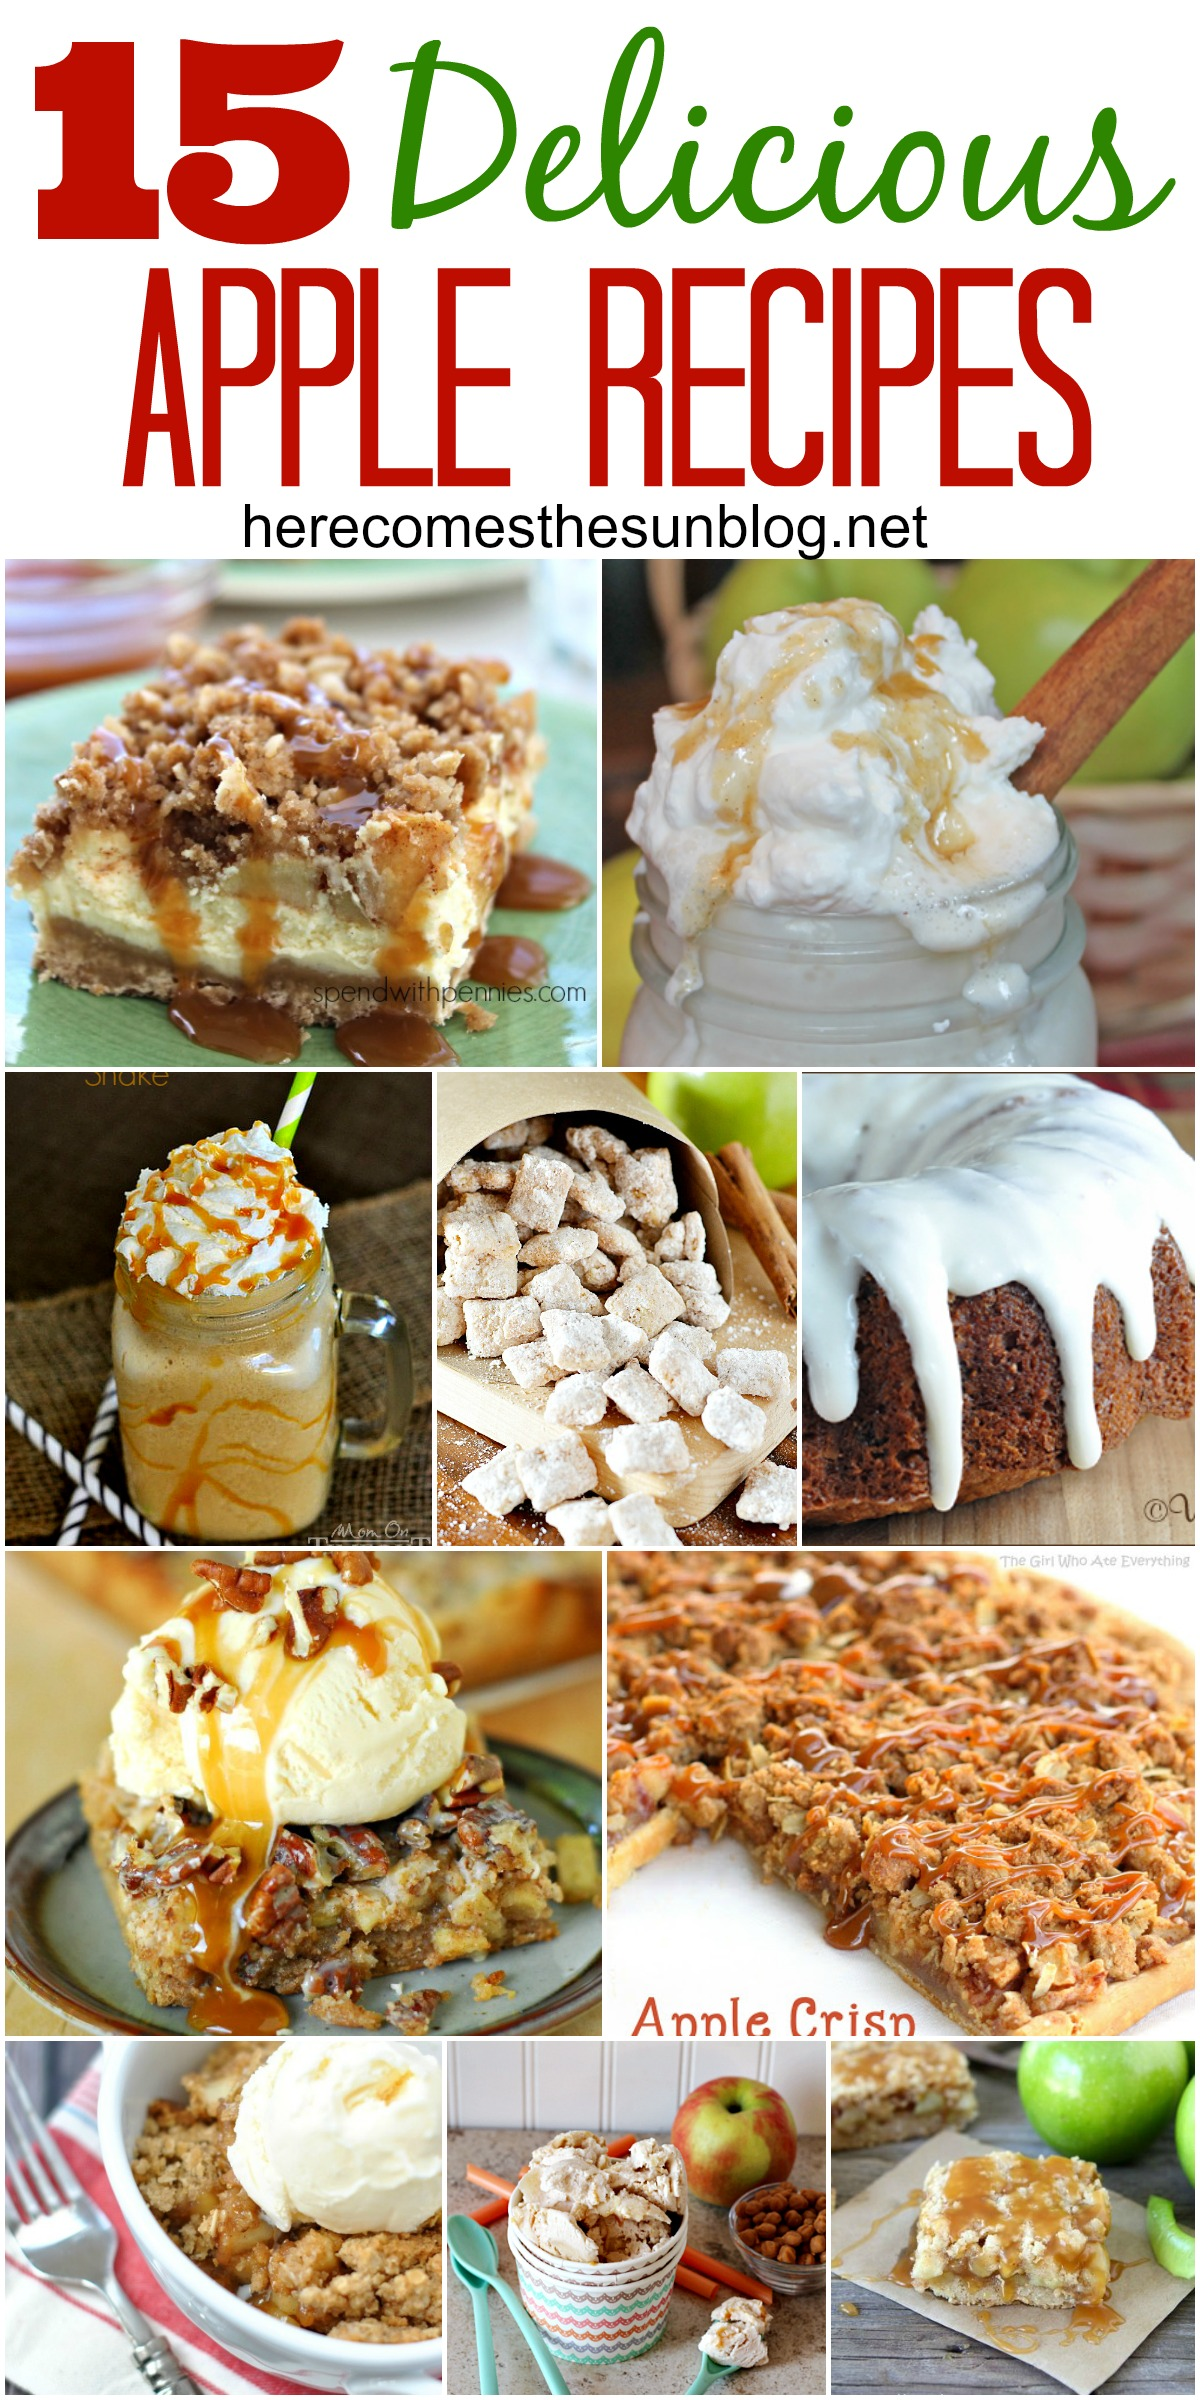 15 Delicious Apple Recipes for Fall!